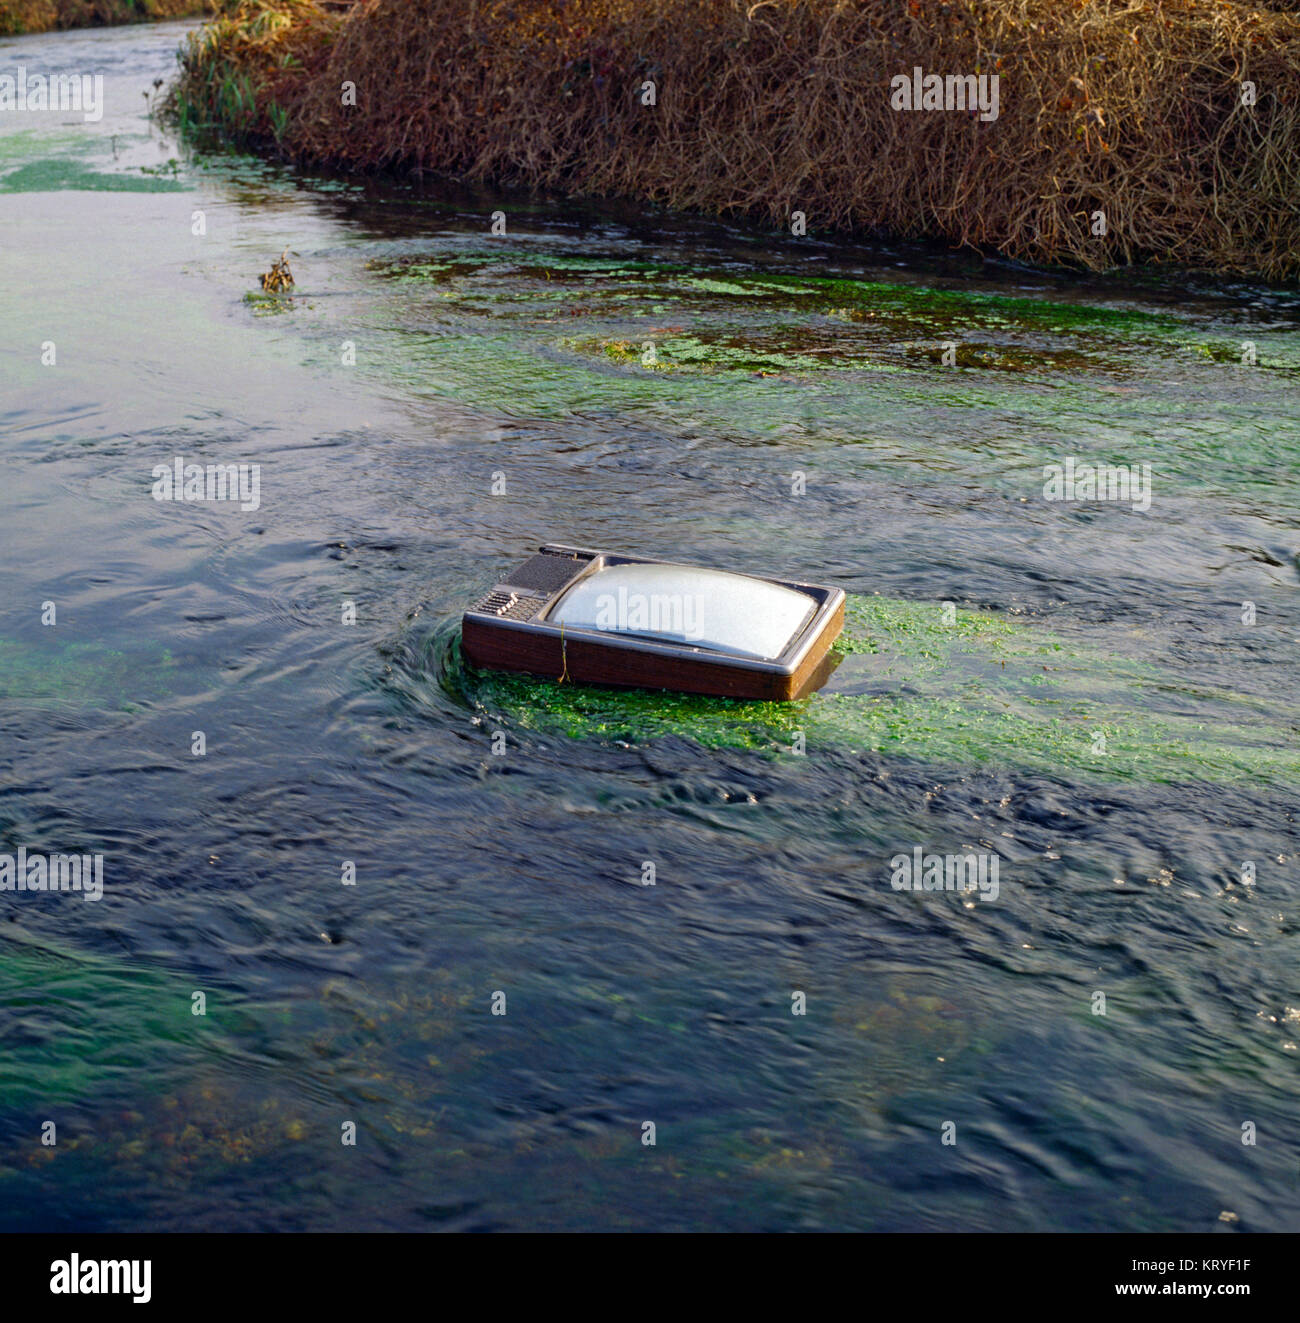 Italy, Lombardy, Provincie of Cremona, Water Pollution, Old TV Dumped in River - Stock Image